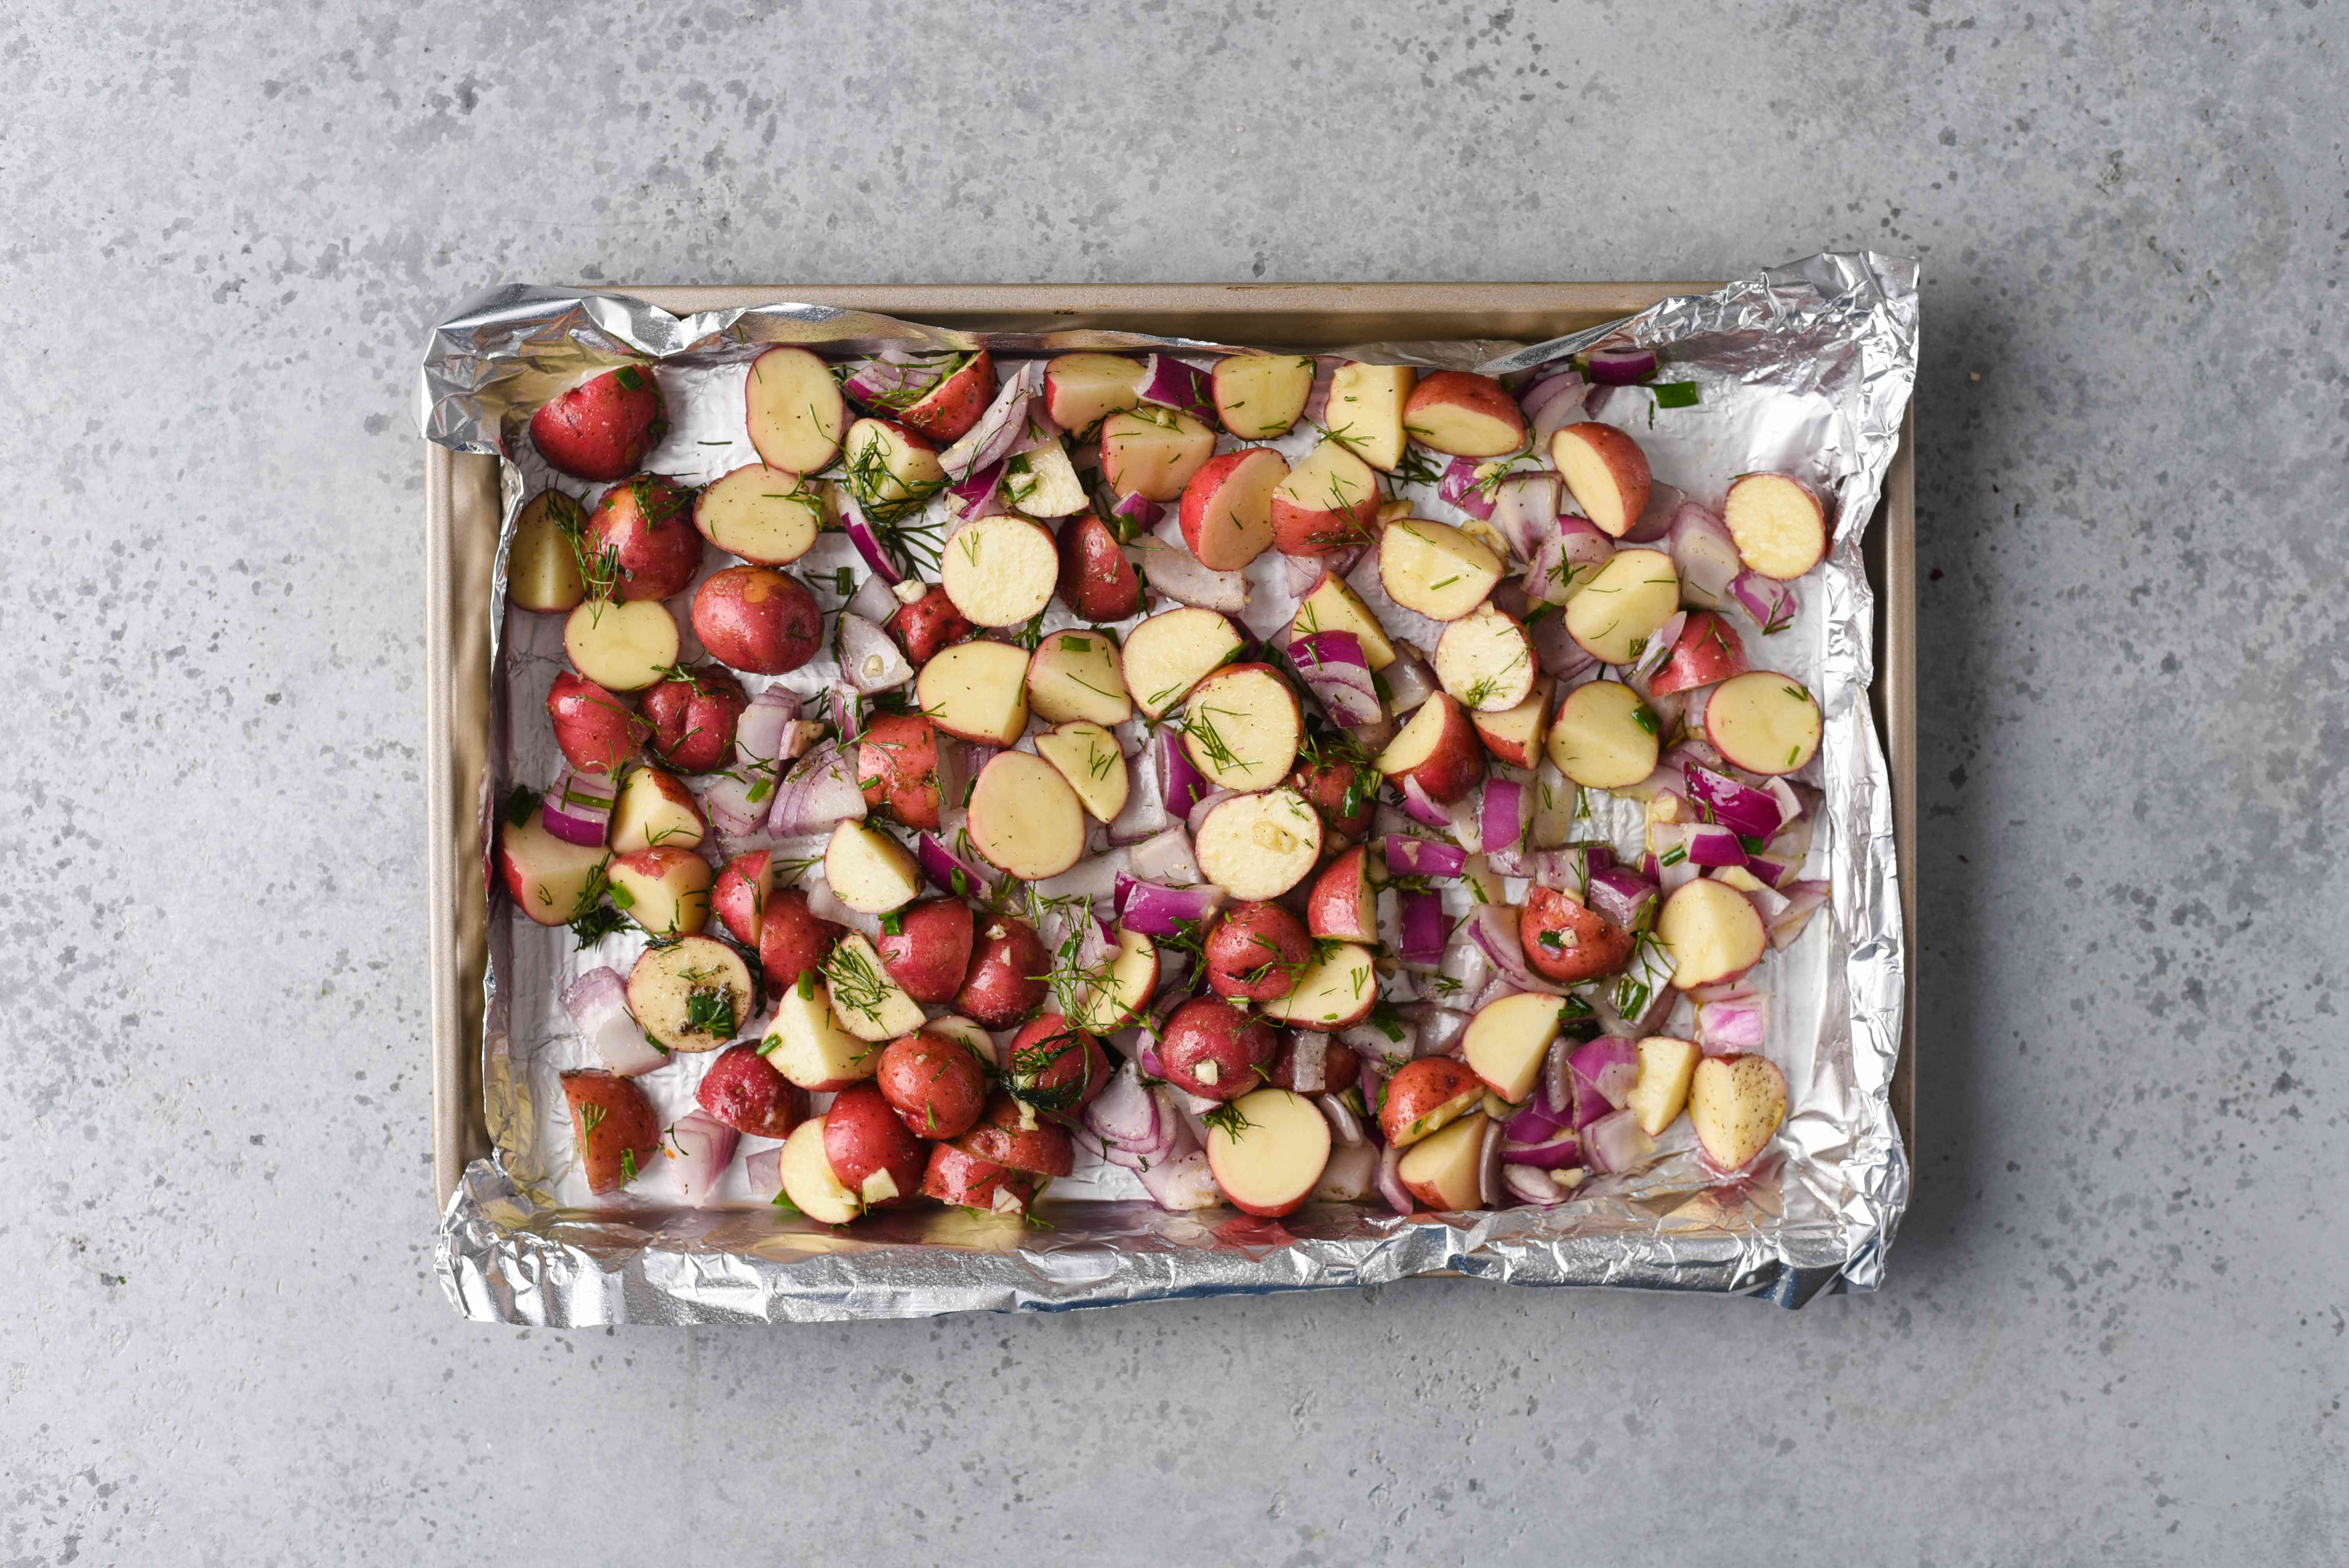 potatoes, onions and herbs on a baking sheet